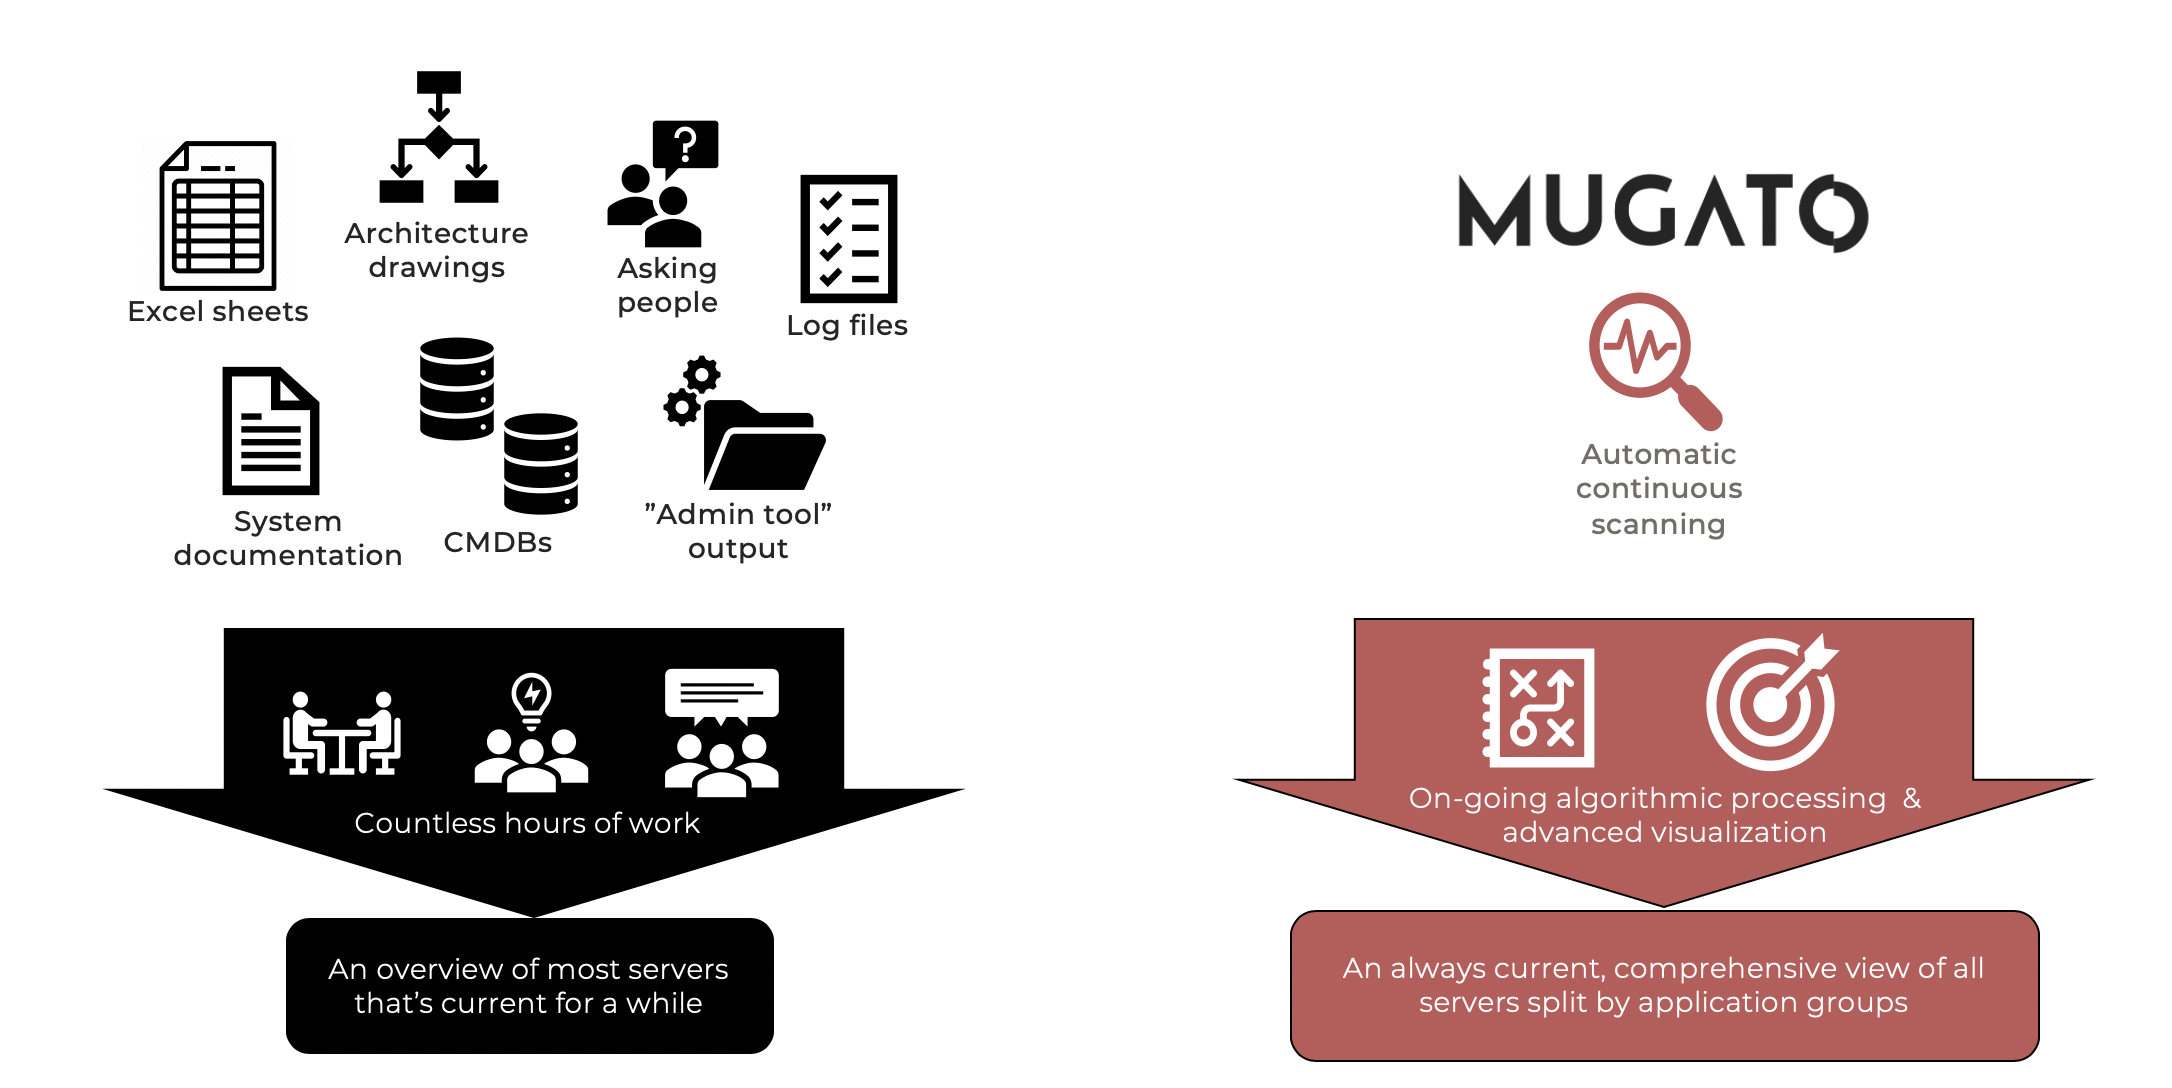 Mugato Workflow Model